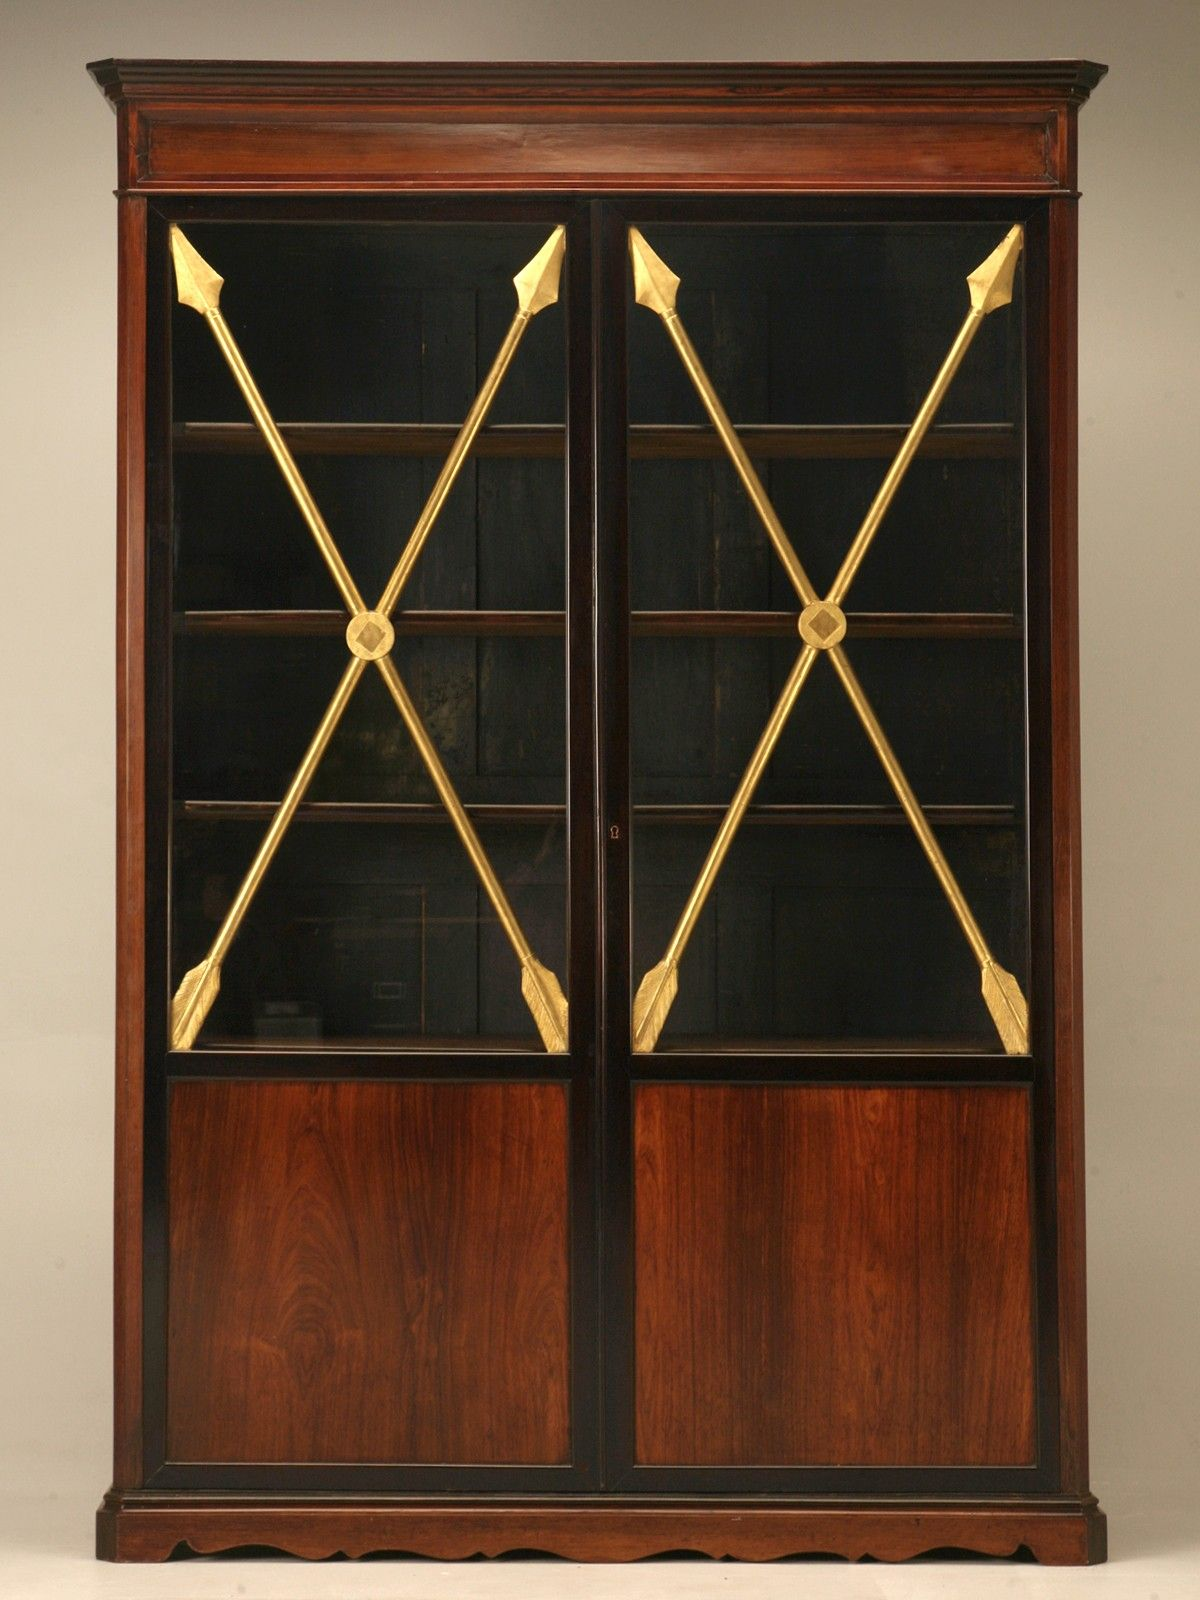 Antique French Directoire Cabinet w/Crossed Gilt Arrows